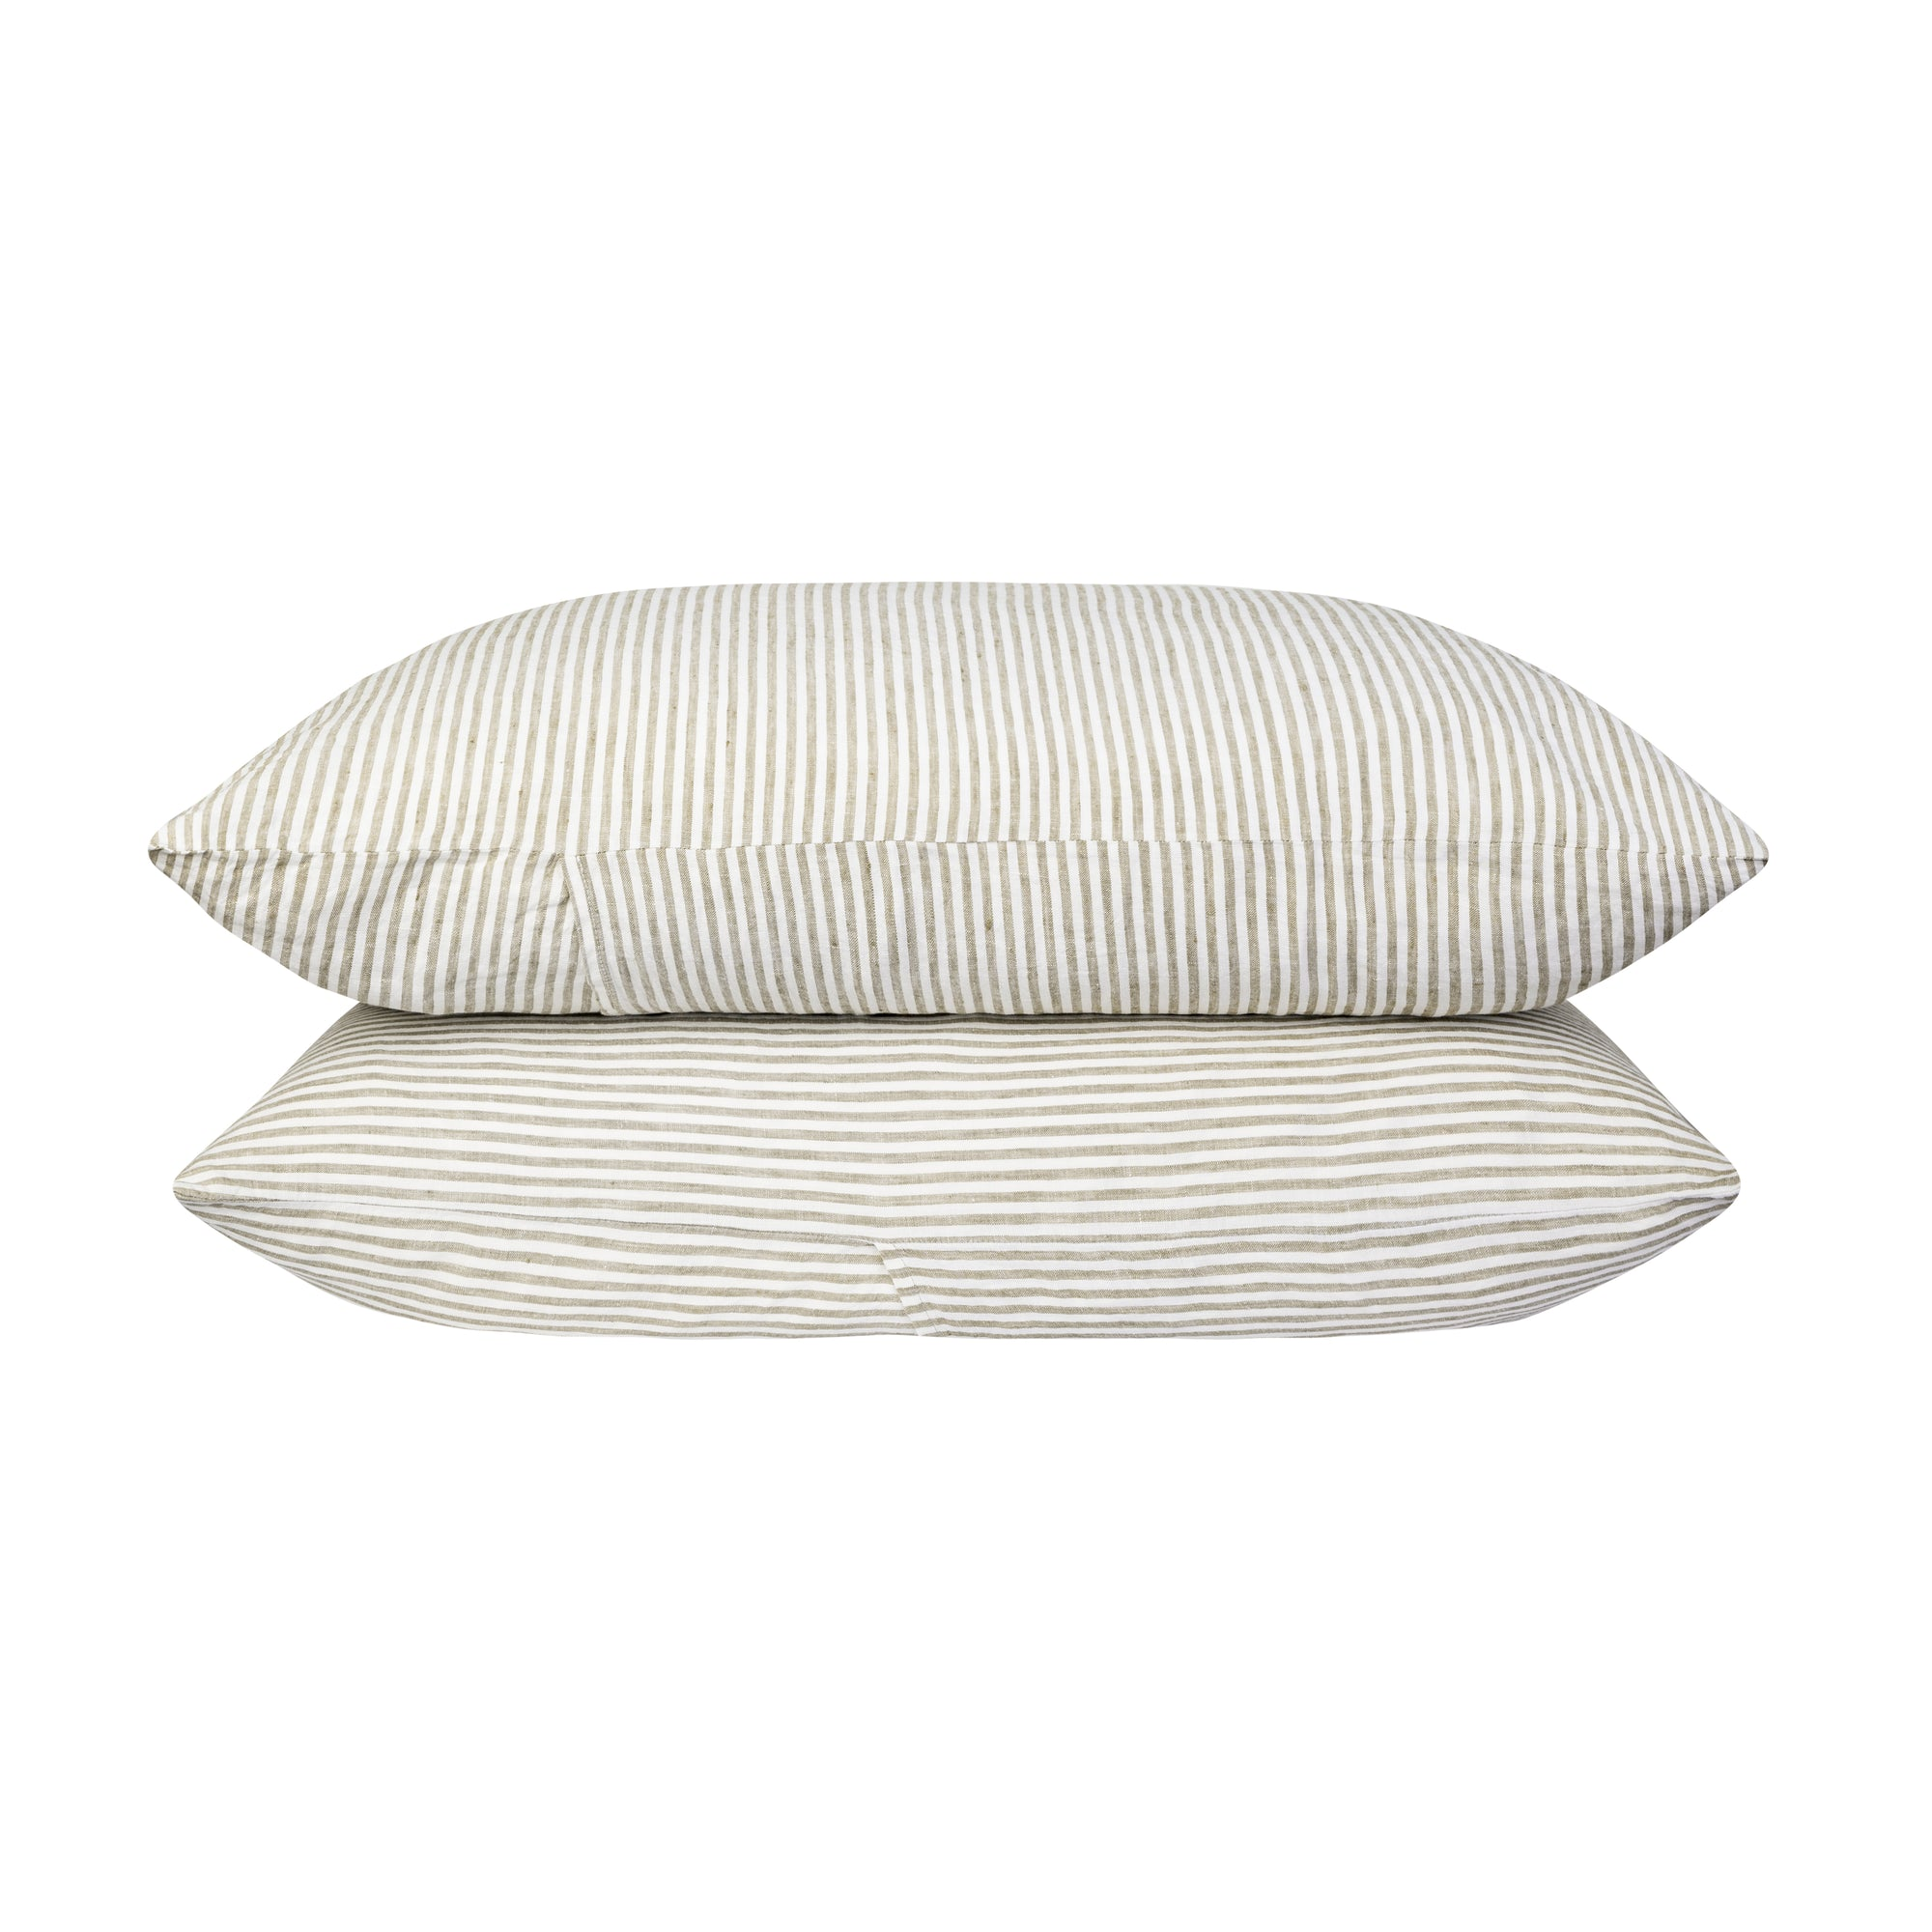 100% Linen Pillowcase set - Olive Stripe. - TOW AND LINE